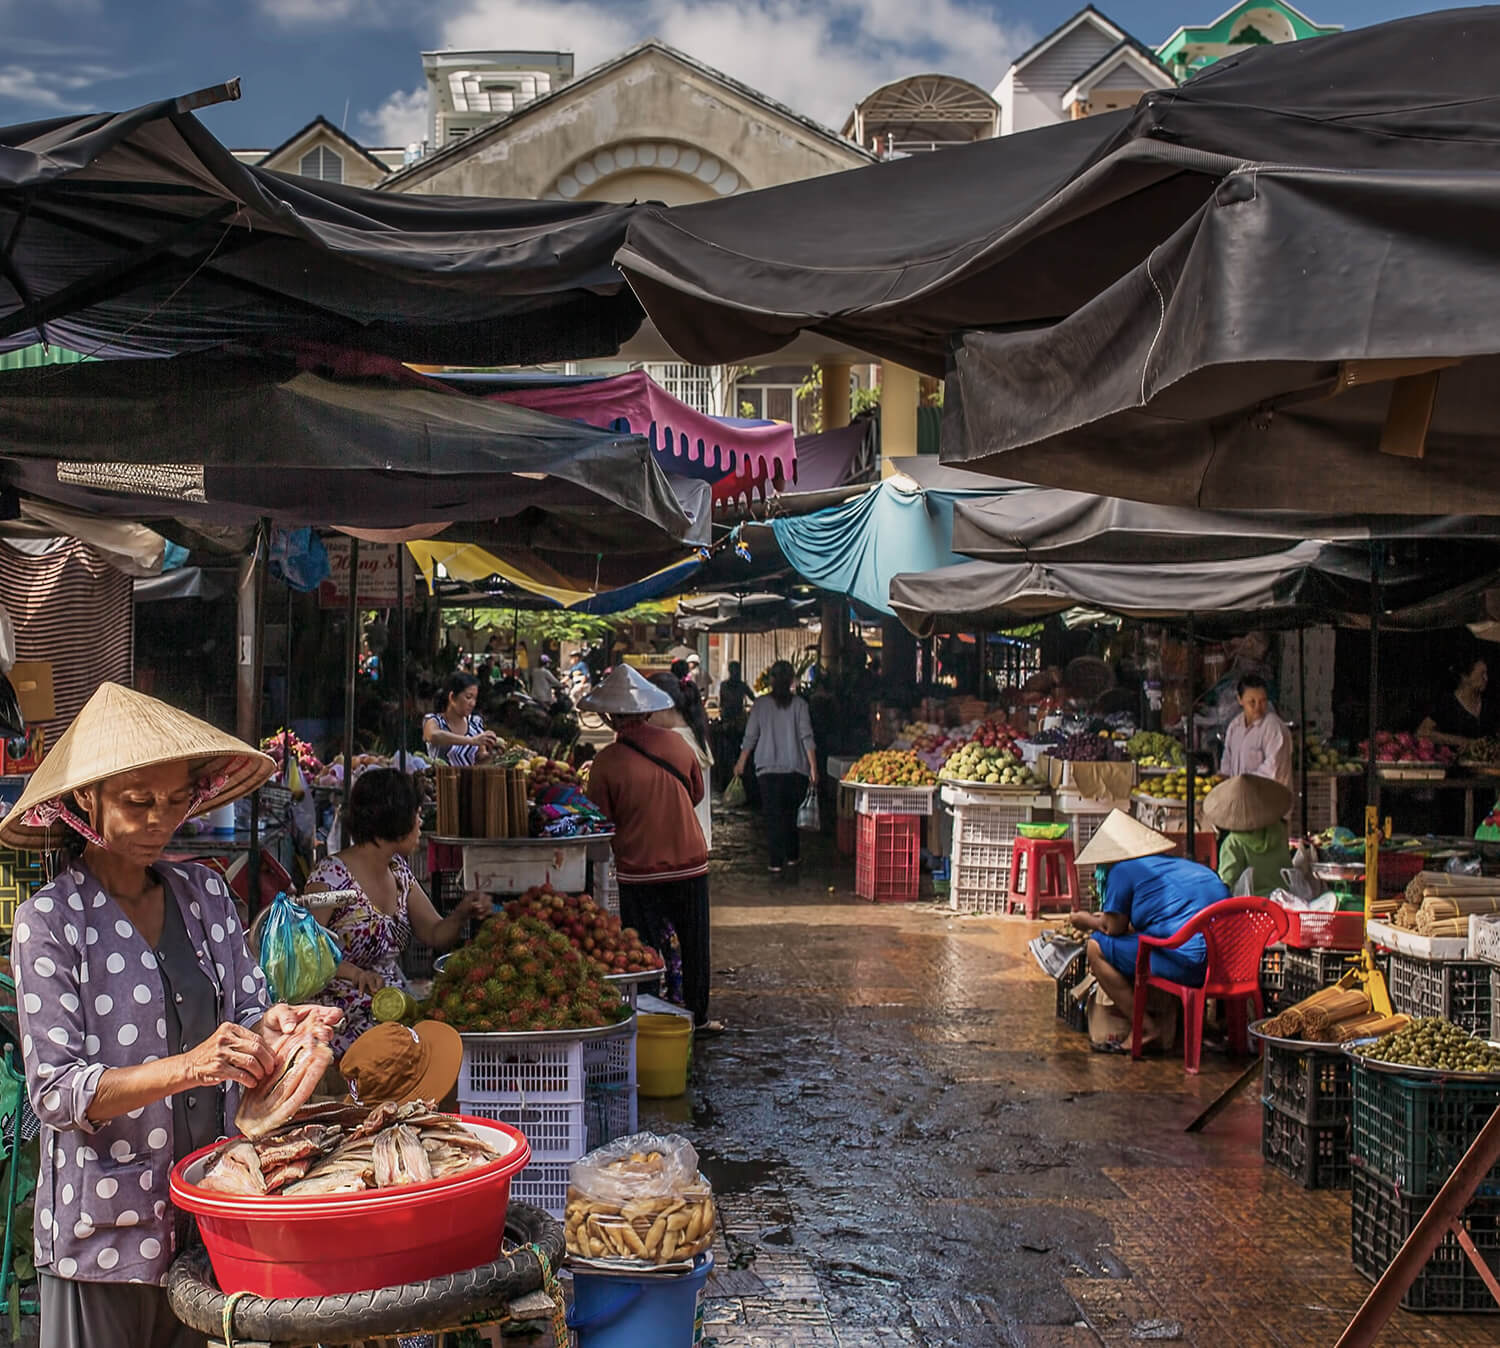 The colourful Tan Chau market in the Mekong Delta